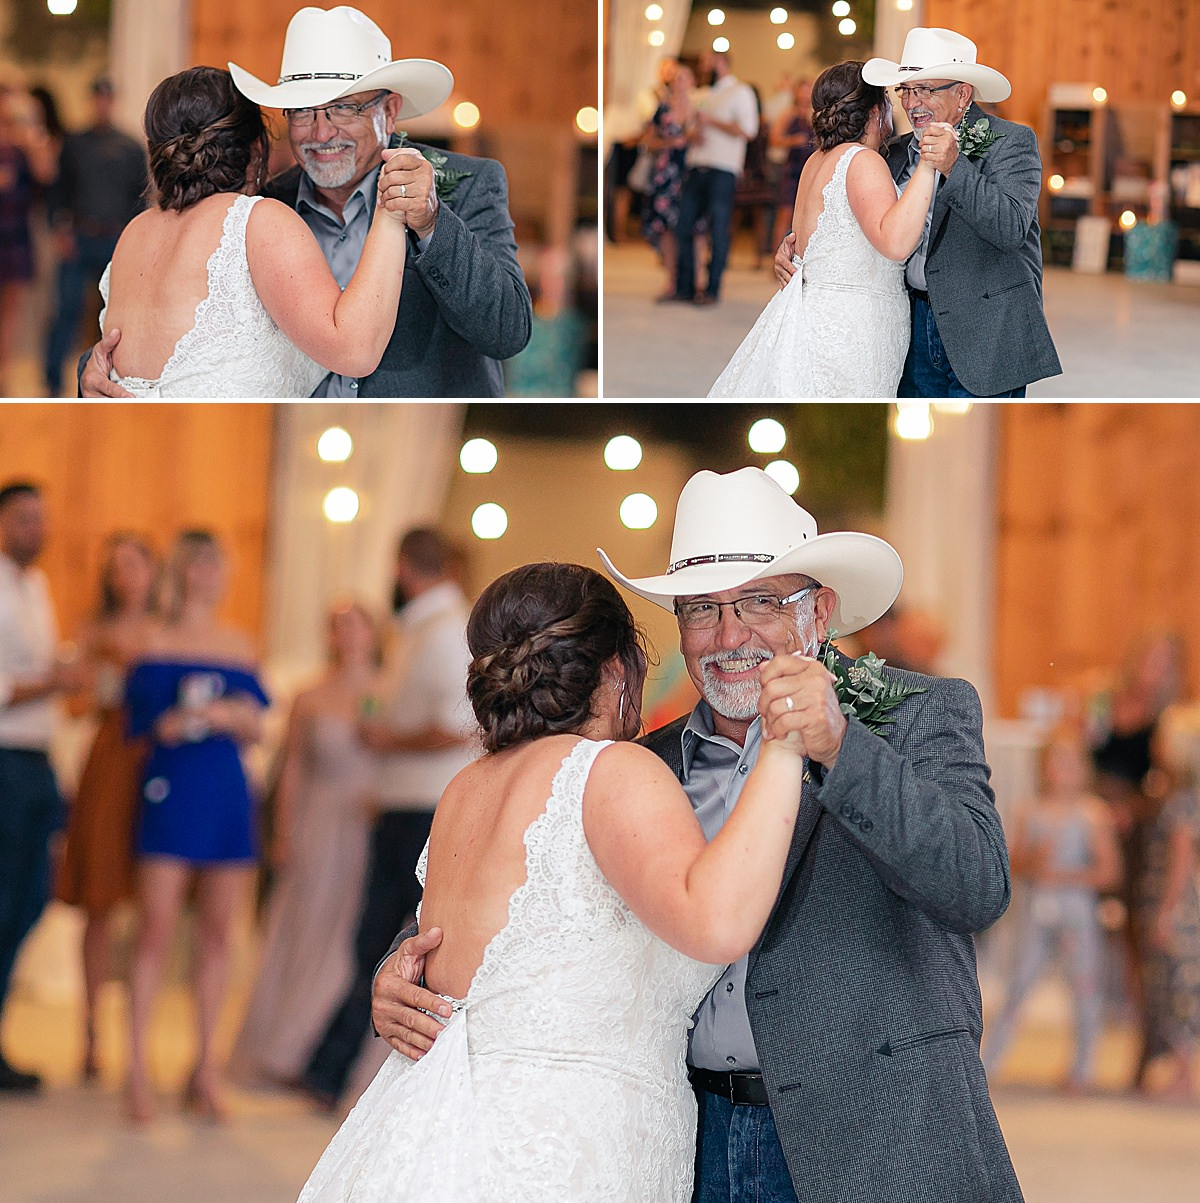 Rustic-Texas-Wedding-Hollow-Creek-Ranch-Carly-Barton-Photography_0033.jpg